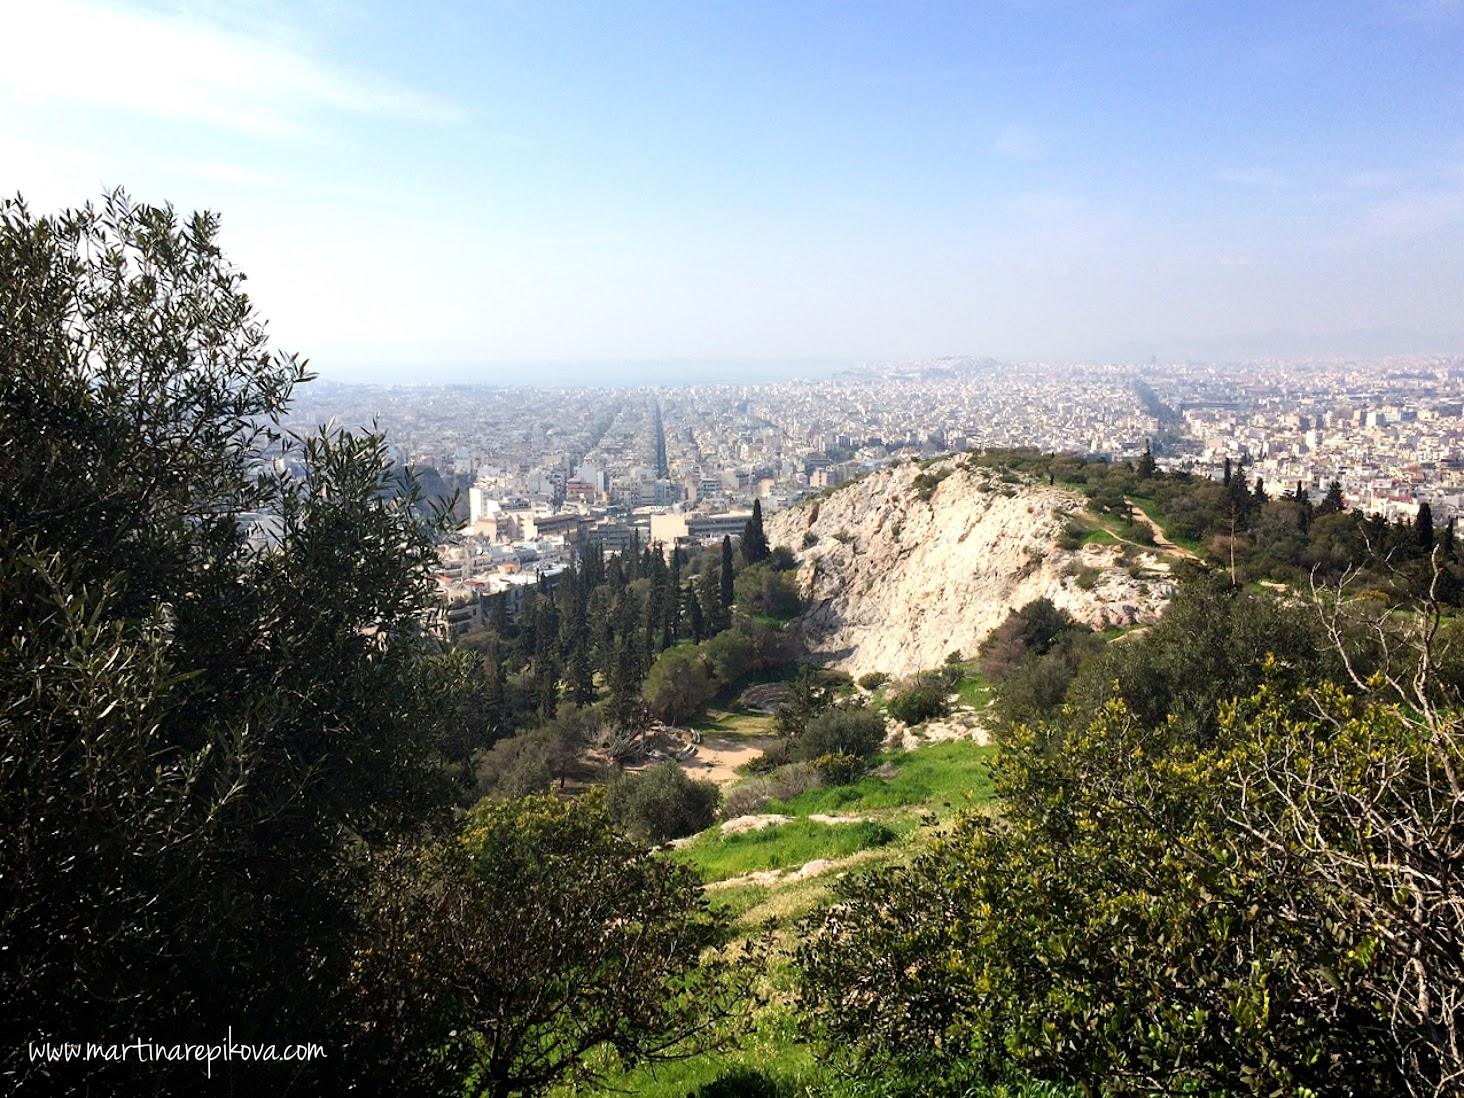 View from the Filopappou hill towards the seaside, Athens, Greece